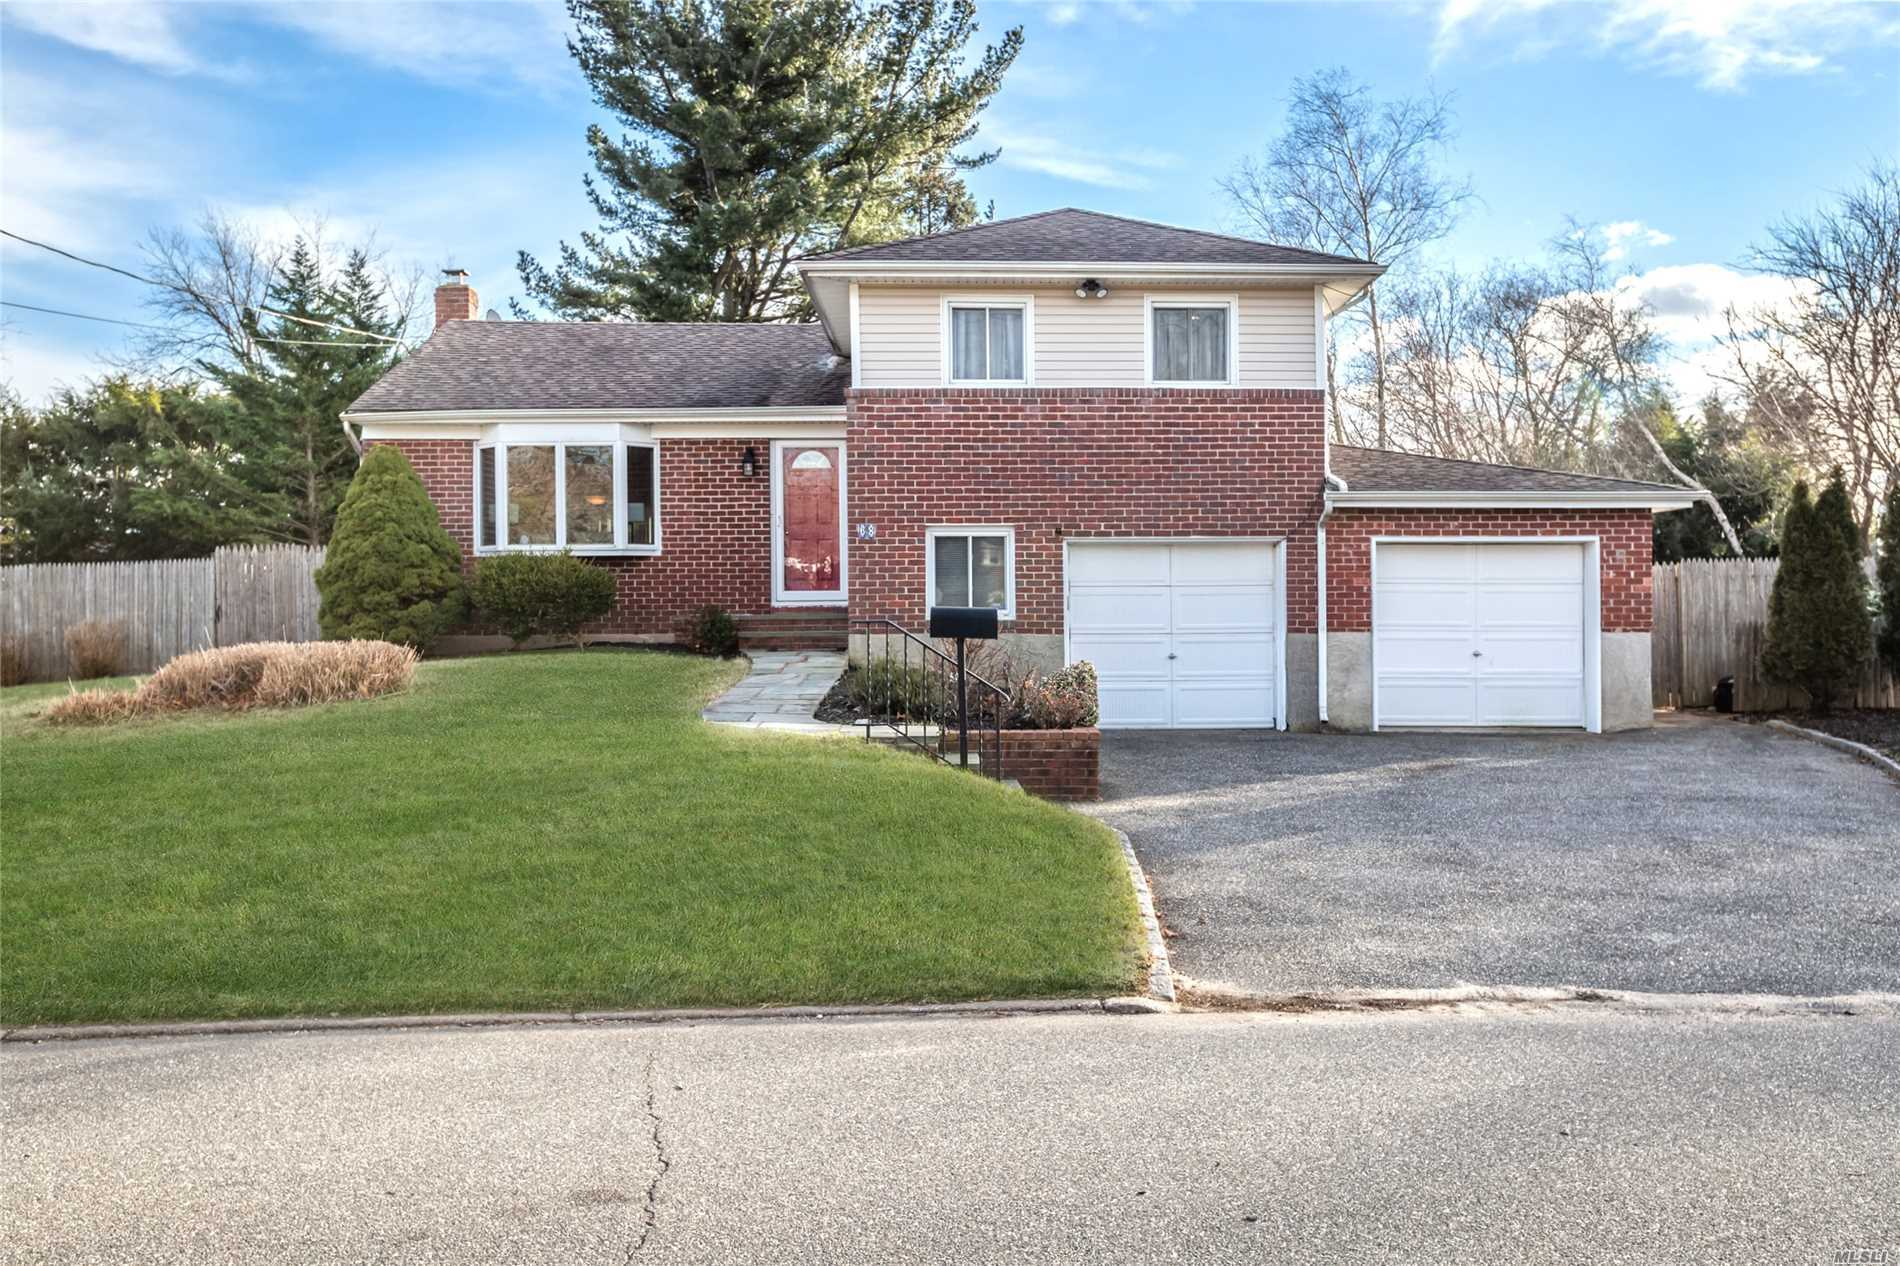 One Of A Kind Split Level Home W/Room For Mom. Vaulted Entry/Lr, Eik W/Maple Cabinets/Granite, Dining Room, Family Room Addition W/Vaulted Ceiling, Slider To Pvt Yard/Paver Patio & Full Bath. Expanded Master Br & Br W/Bamboo Floors, Finished Basement, Garage & More. Mom's Place. Pvt Side Yard Entry, Lr & Dr W/ Vaulted Ceiling, Bedroom, Office/Study, Bath & 2nd Garage. Windows, Roof And Siding Approx.10 Years Old. Cac/2 Zone, Heat/3 Zone, 200 Amp Electric.